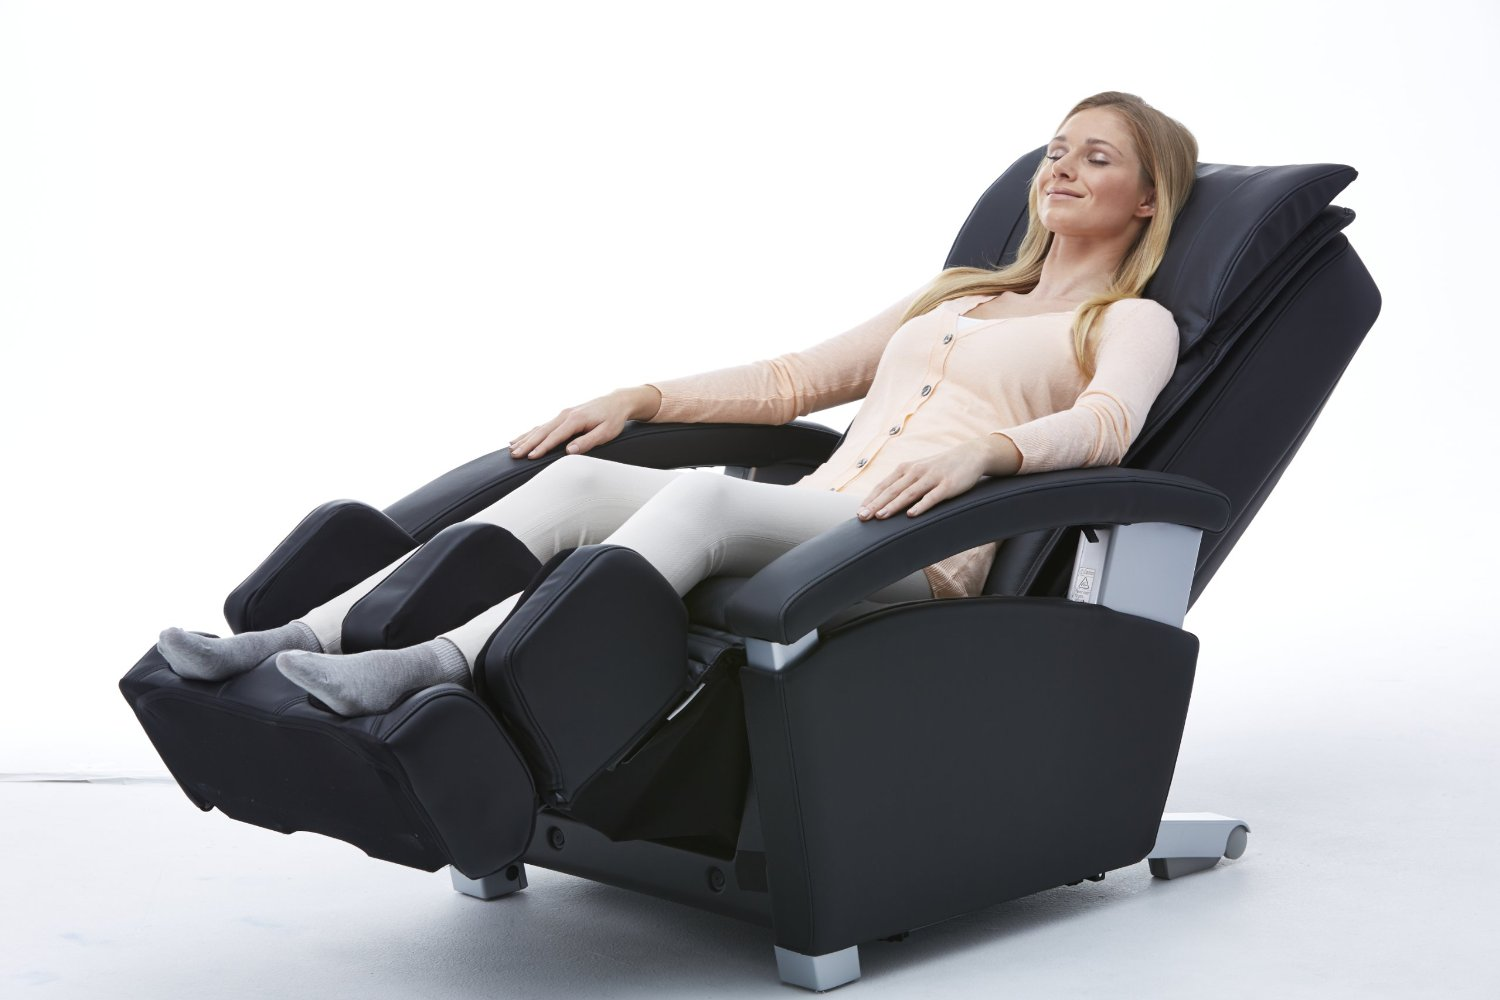 A Guide for Choosing the Best Quality Recliner Chair  : Massage Recliners from www.bestrecliner.net size 1500 x 1000 jpeg 97kB